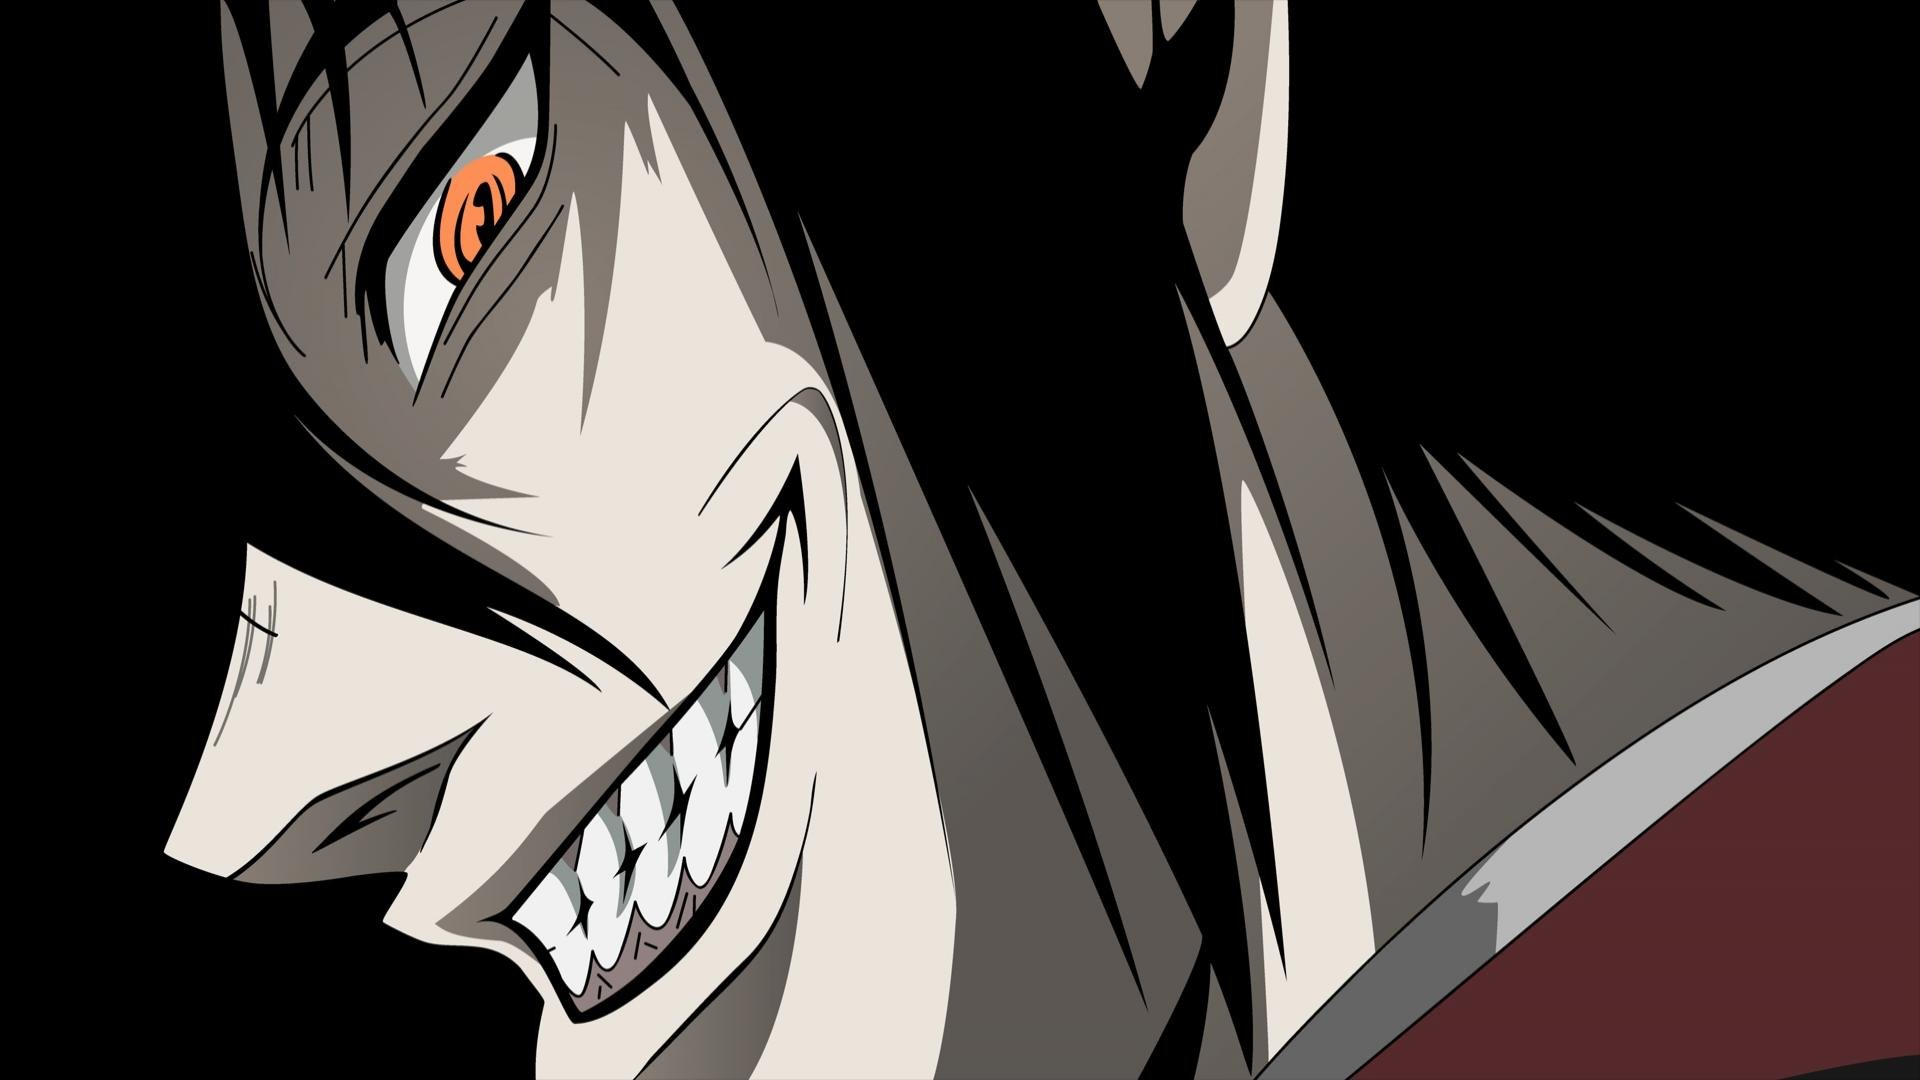 Awesome Hellsing free wallpaper ID:329552 for hd 1080p desktop